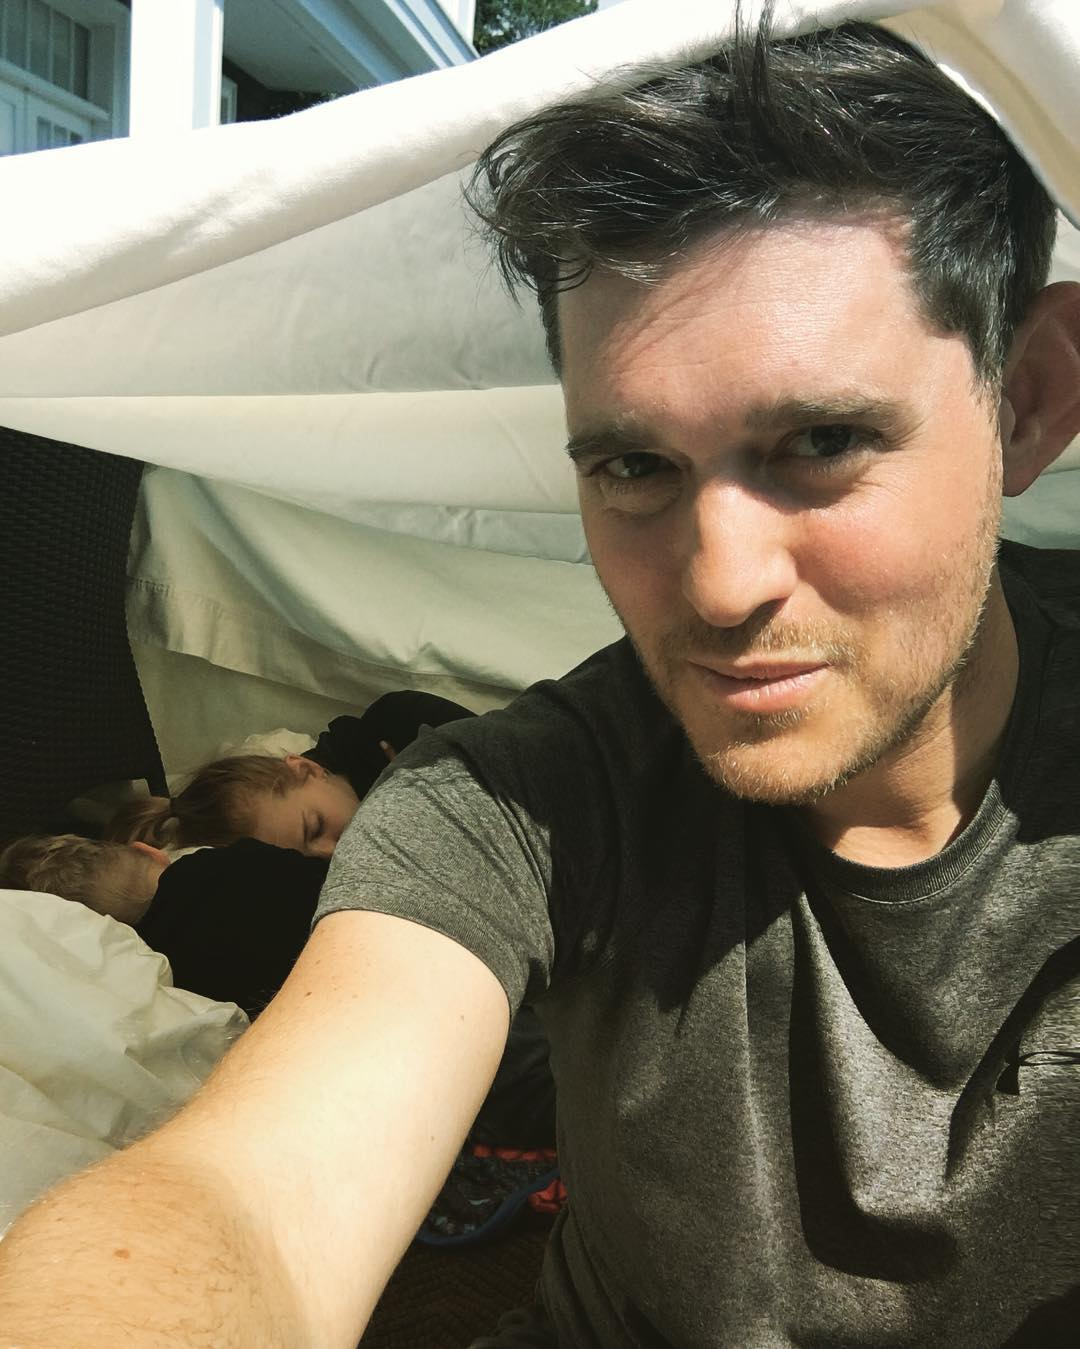 Michael Bublé Instagram: We built a tent made of bed sheets and camped outside our house today !! This is...